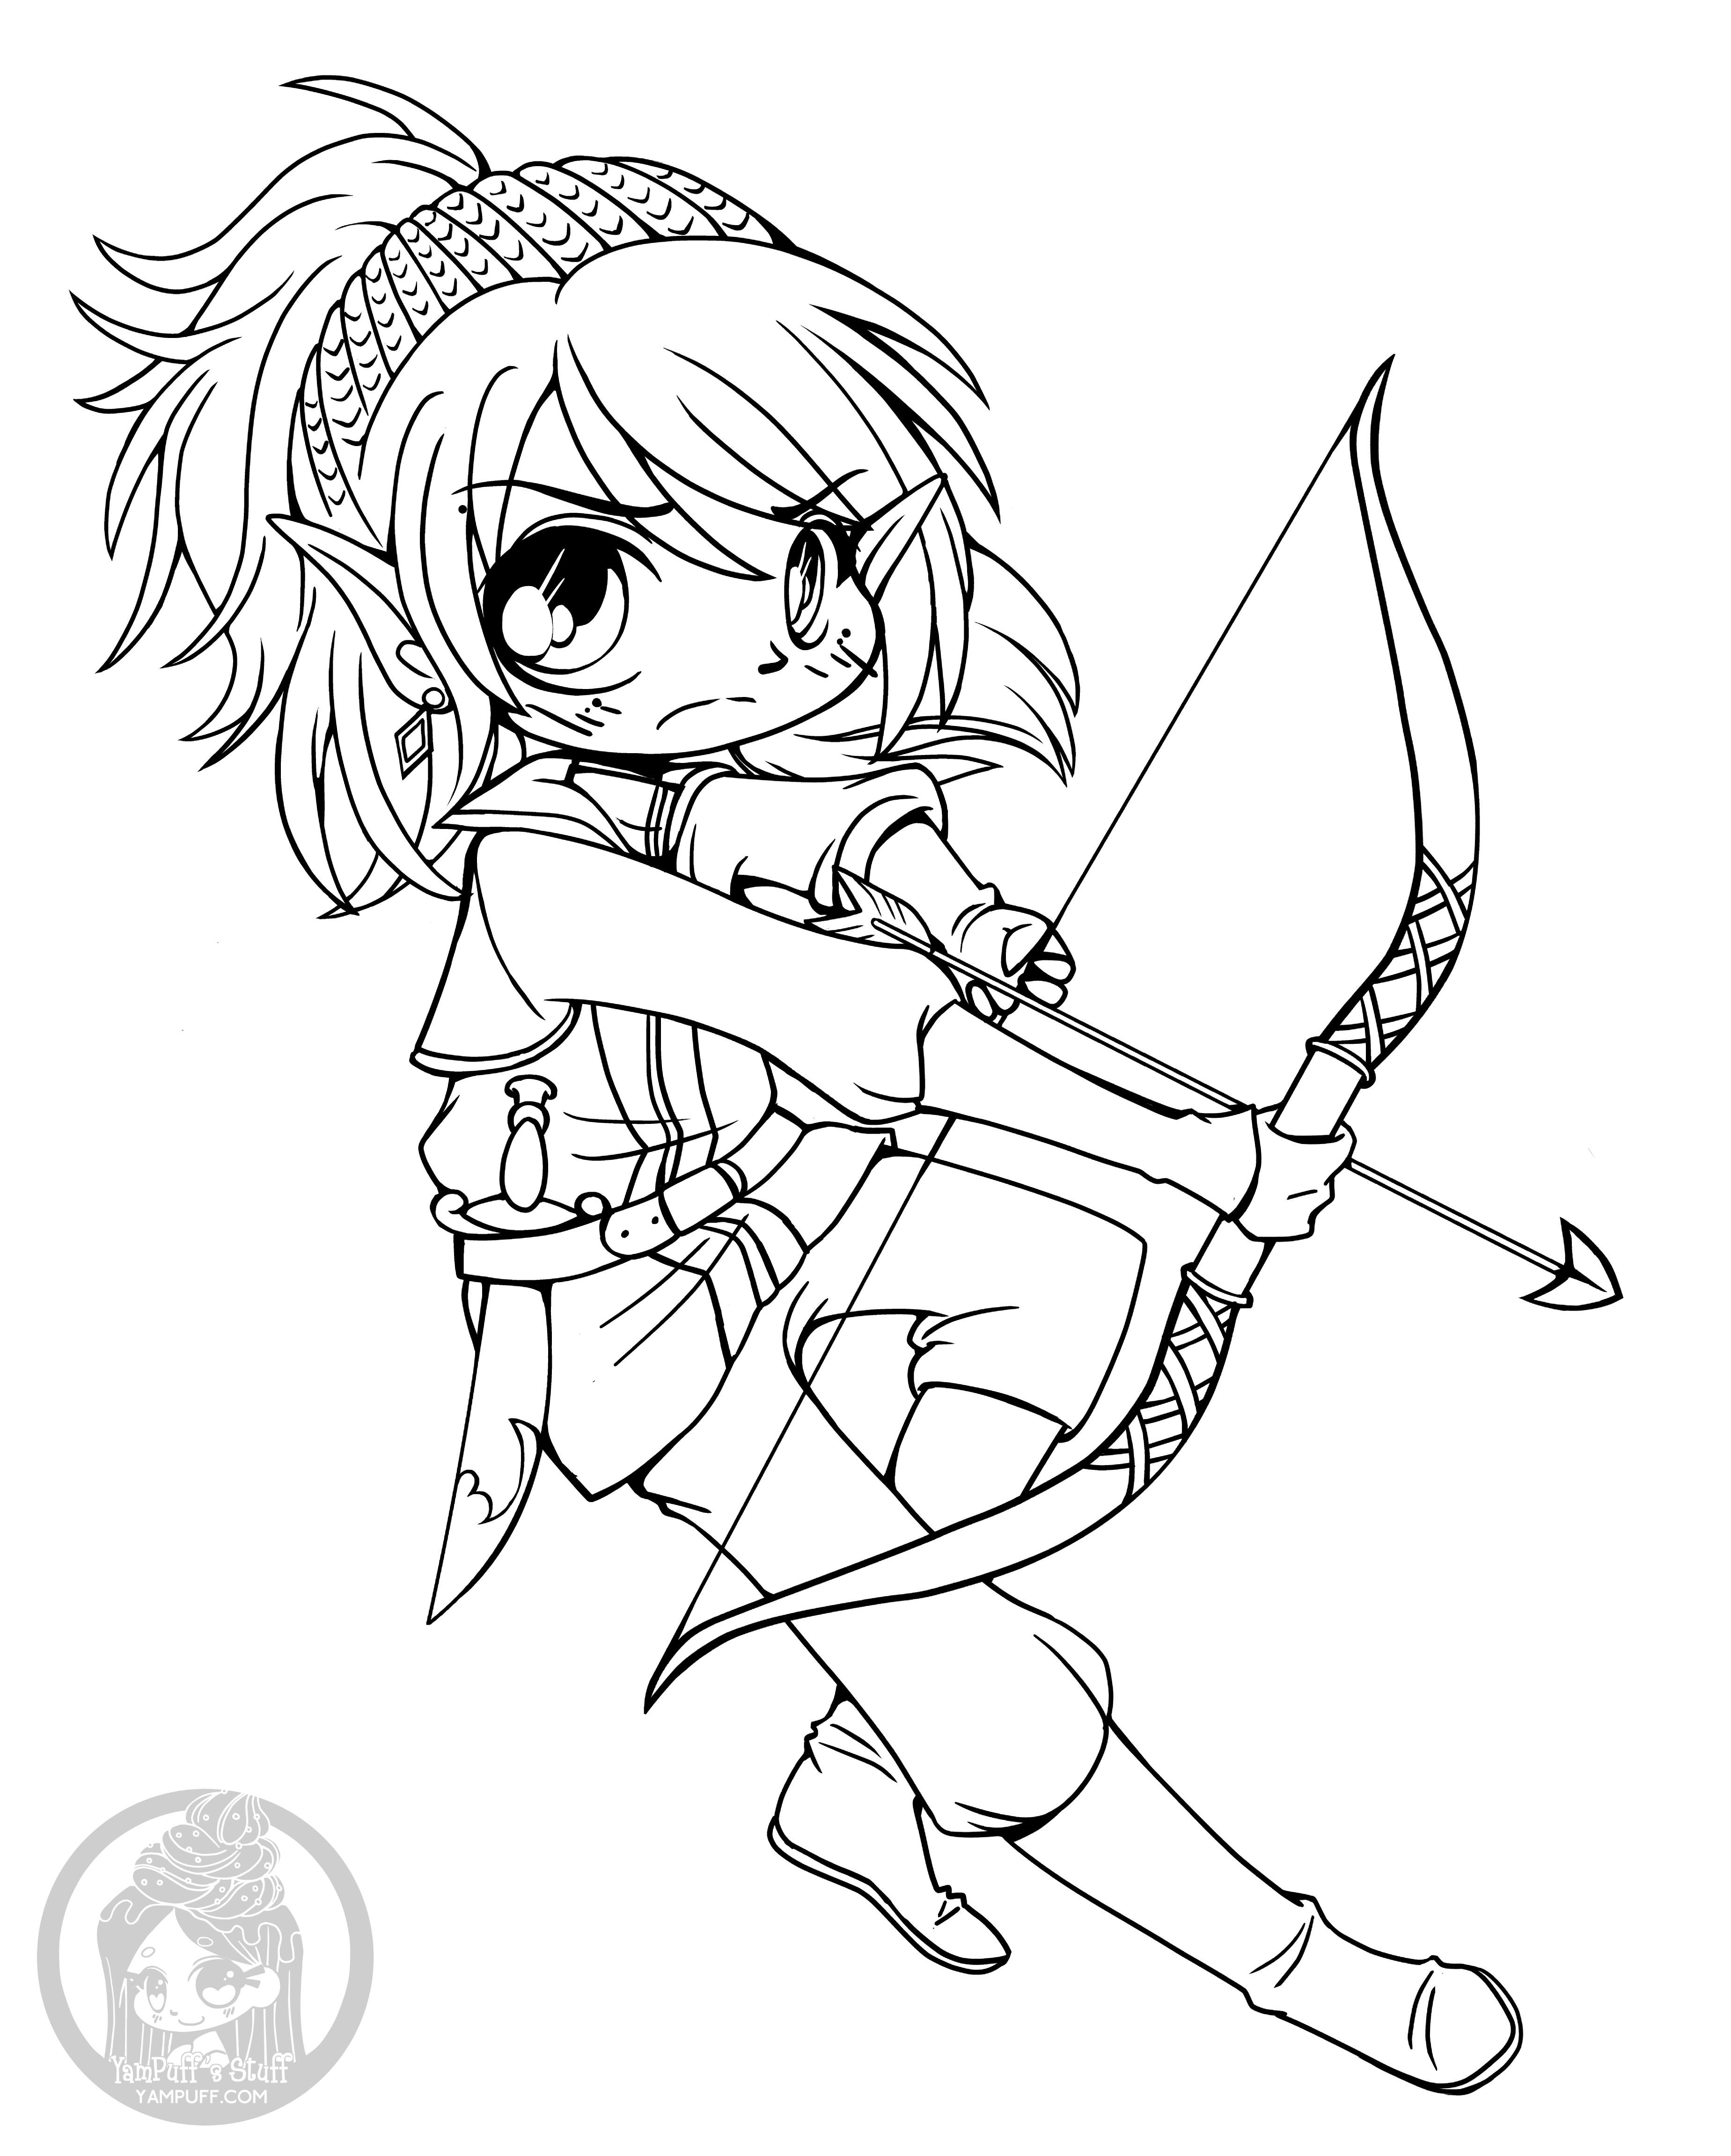 cute chibi girl coloring pages vermillia chibi lineart commission by yampuff on deviantart cute chibi pages girl coloring